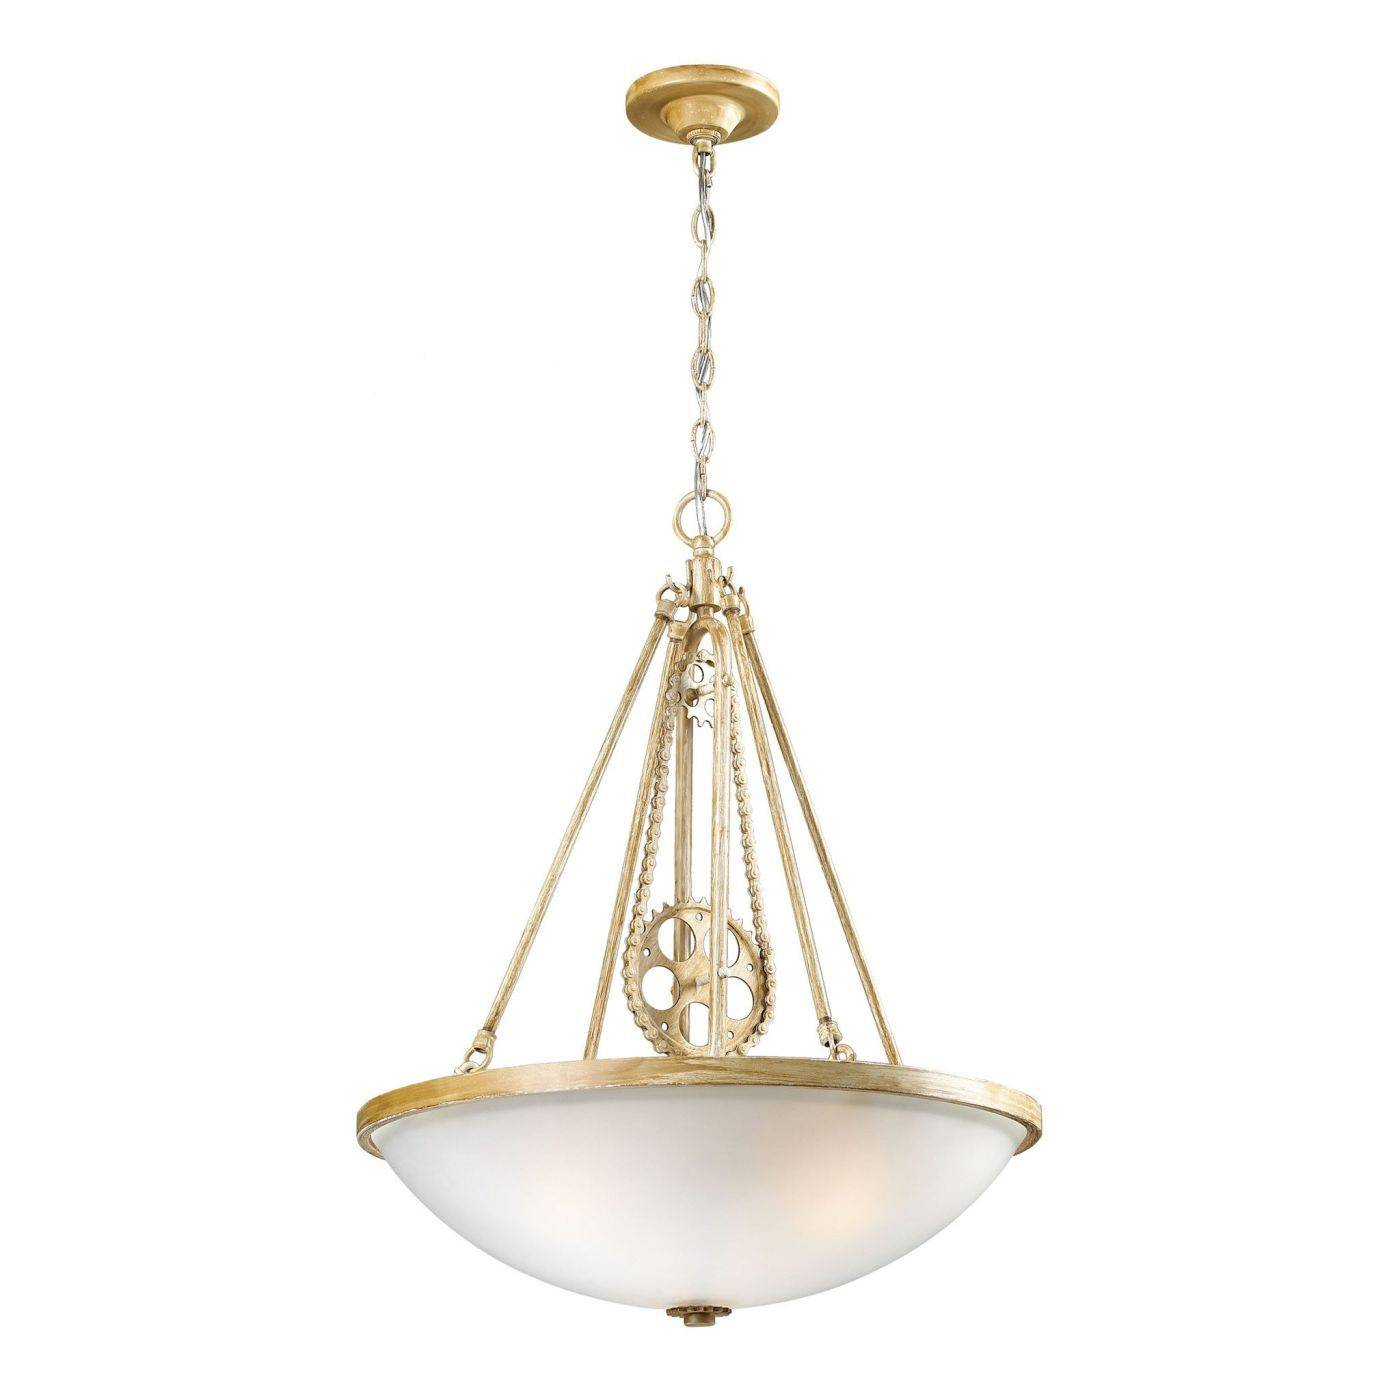 ceiling lamps elk group 3 cog and chain light pendant in bleached wood with white frosted glass lamp 530